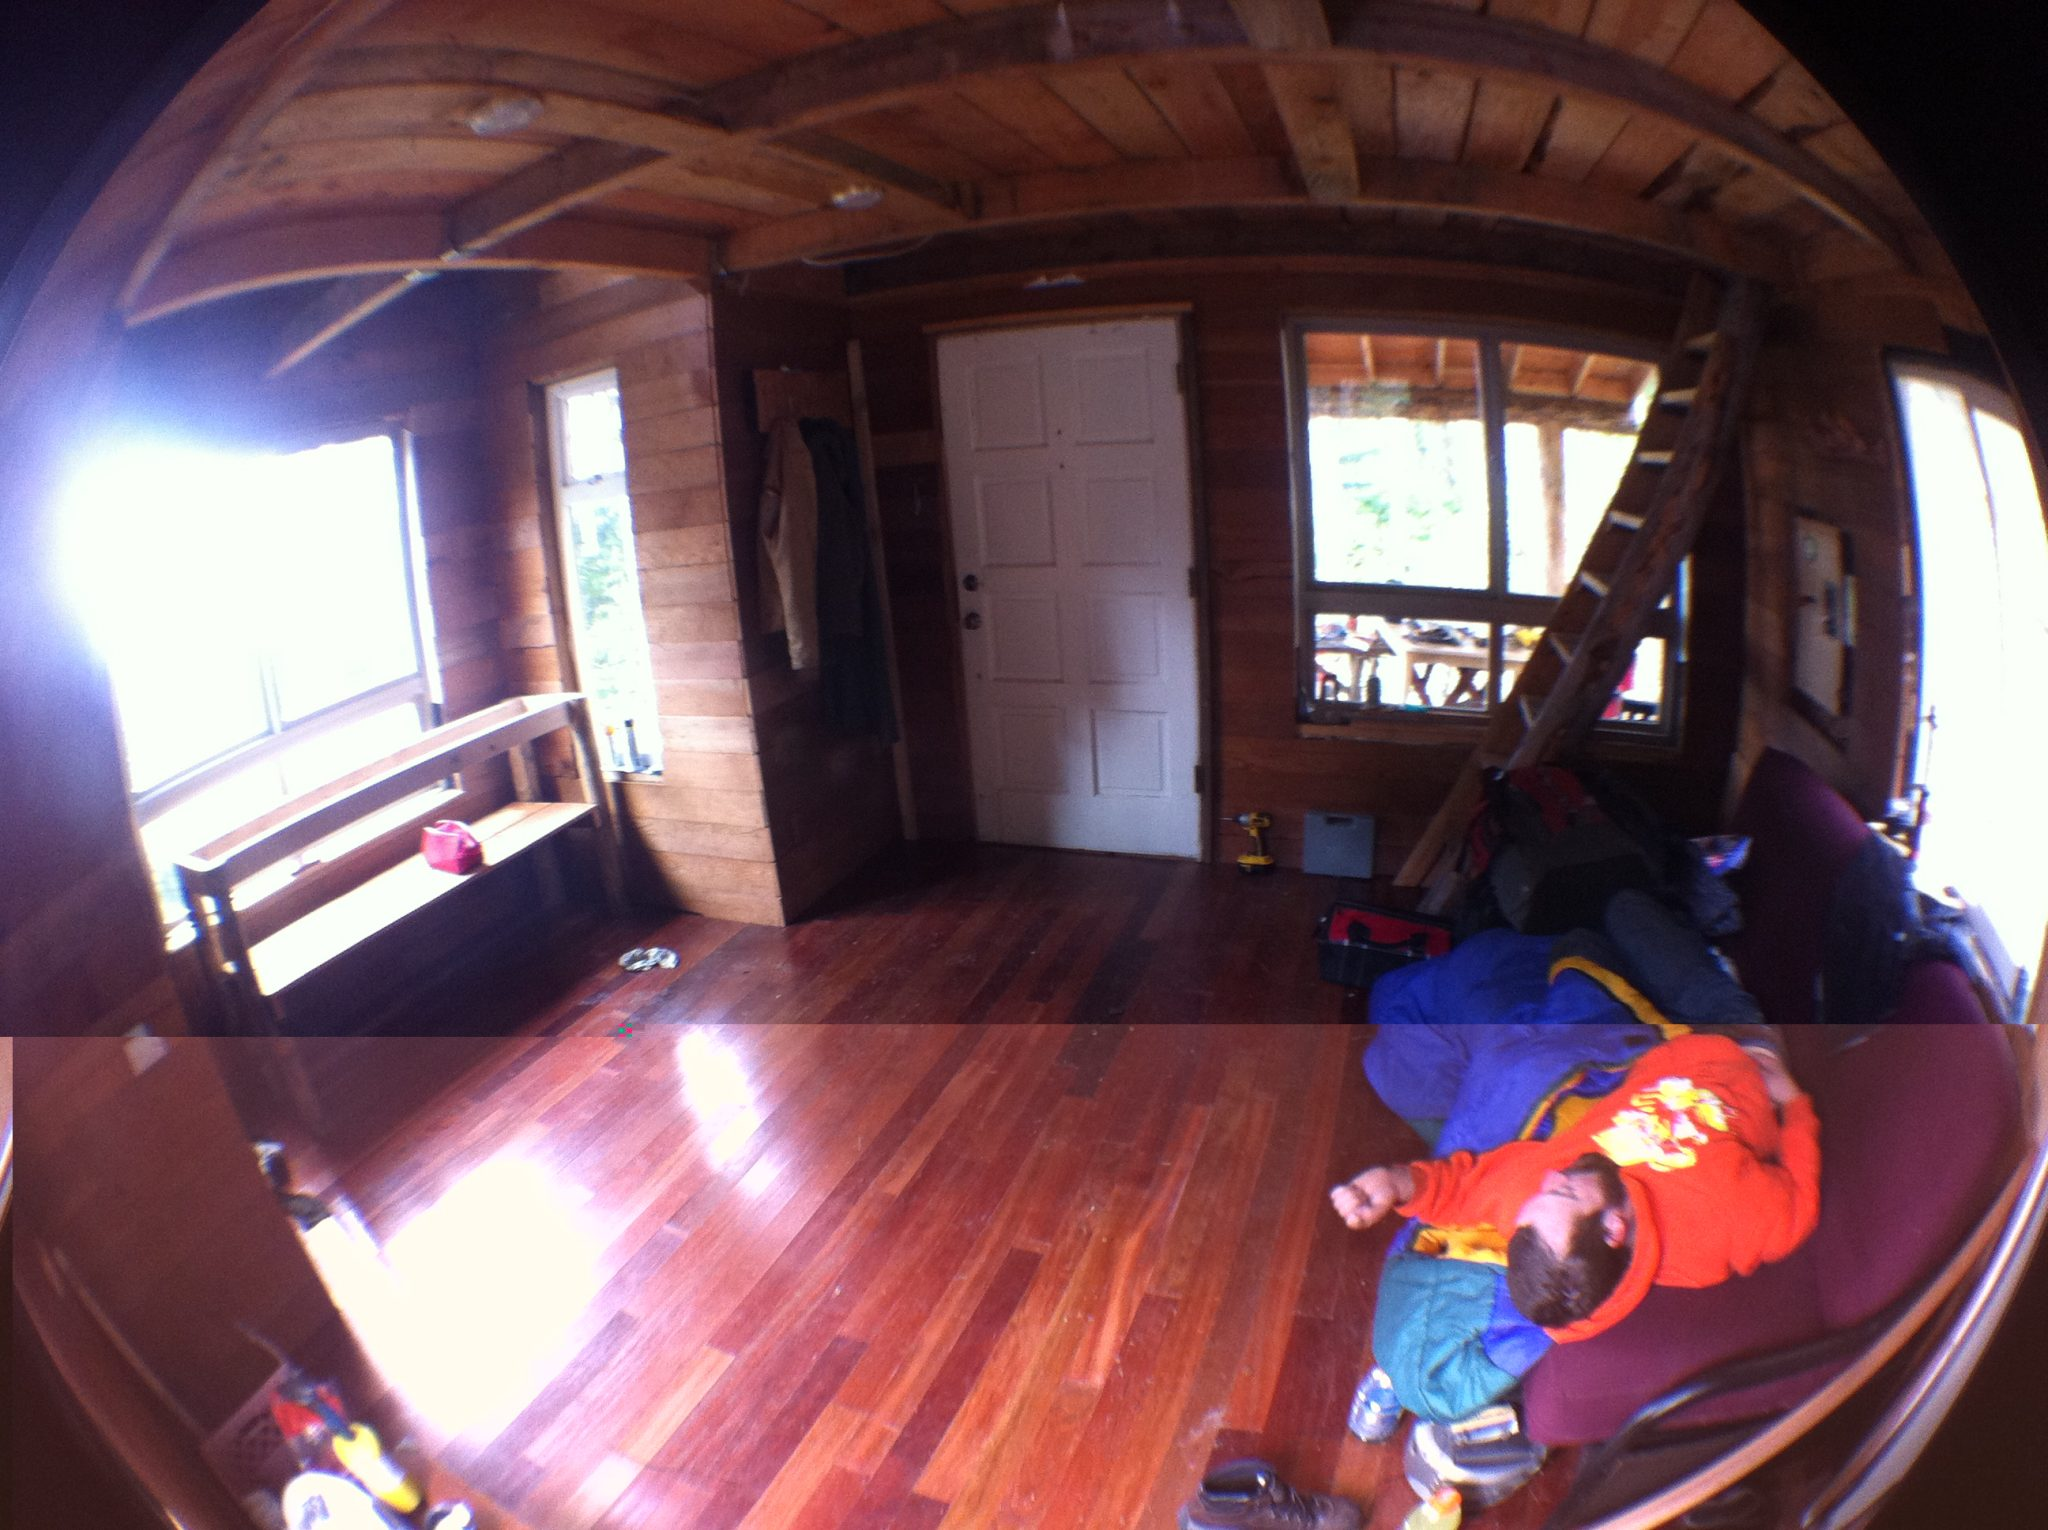 Wood floor in tiny cabin